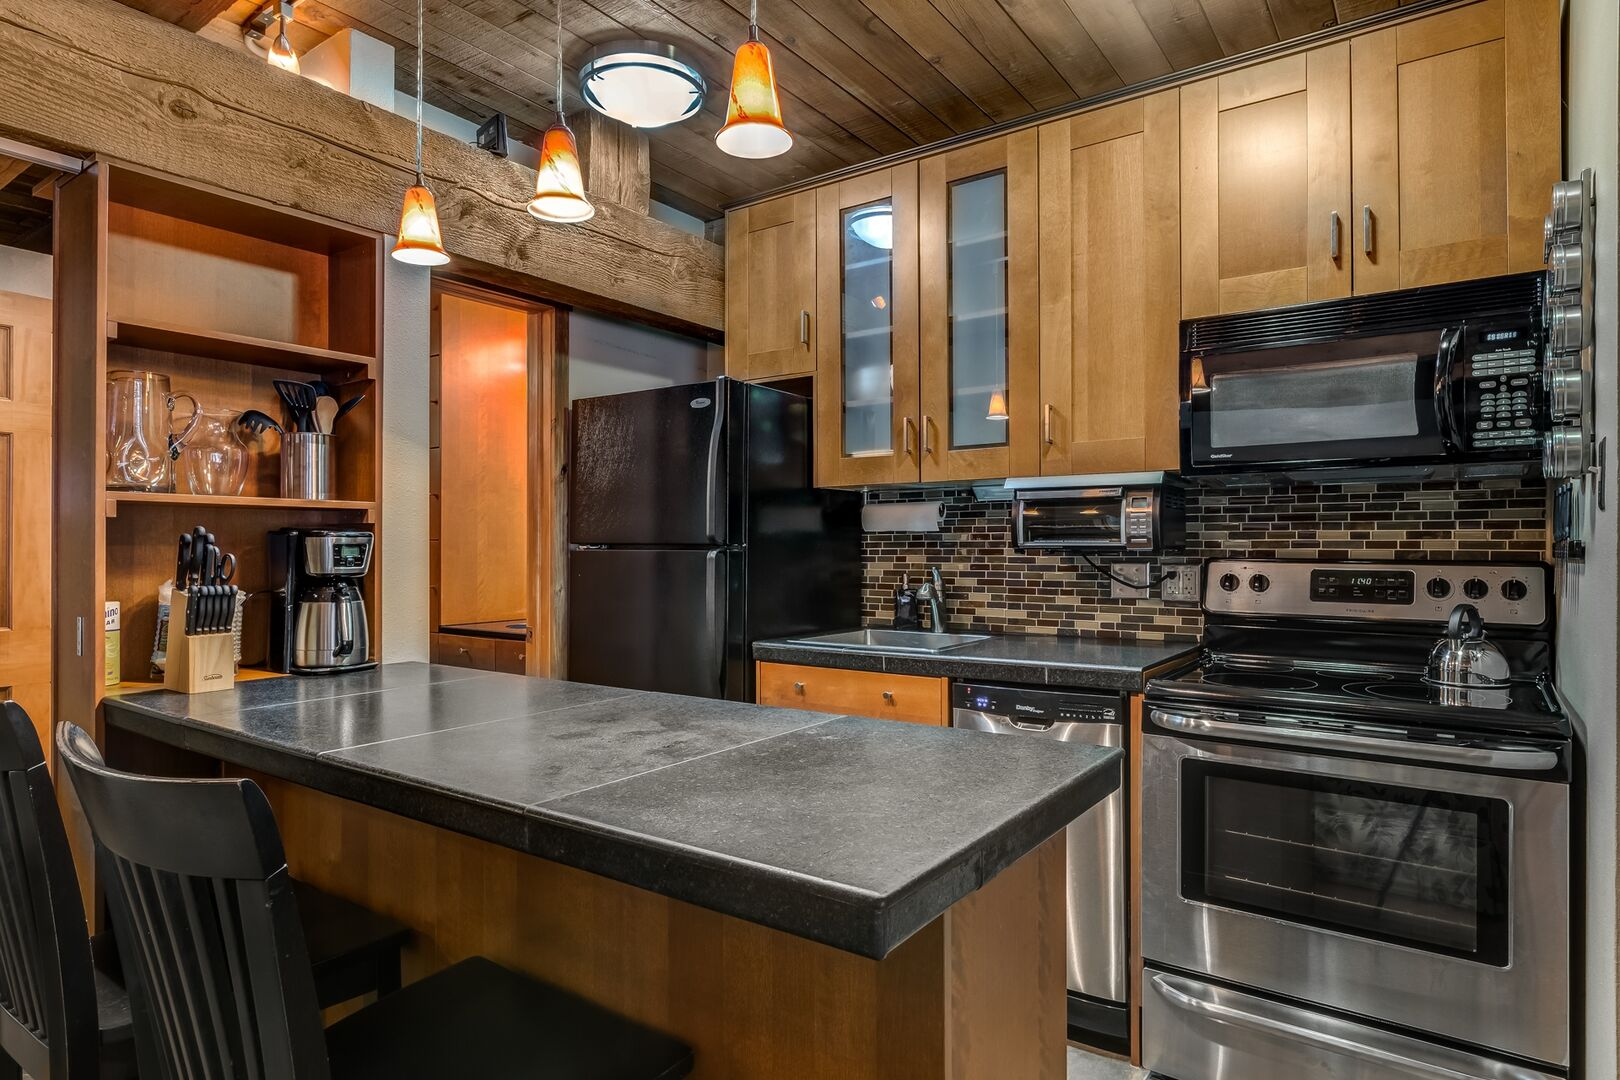 Remodeled kitchen of this condo in Steamboat Springs